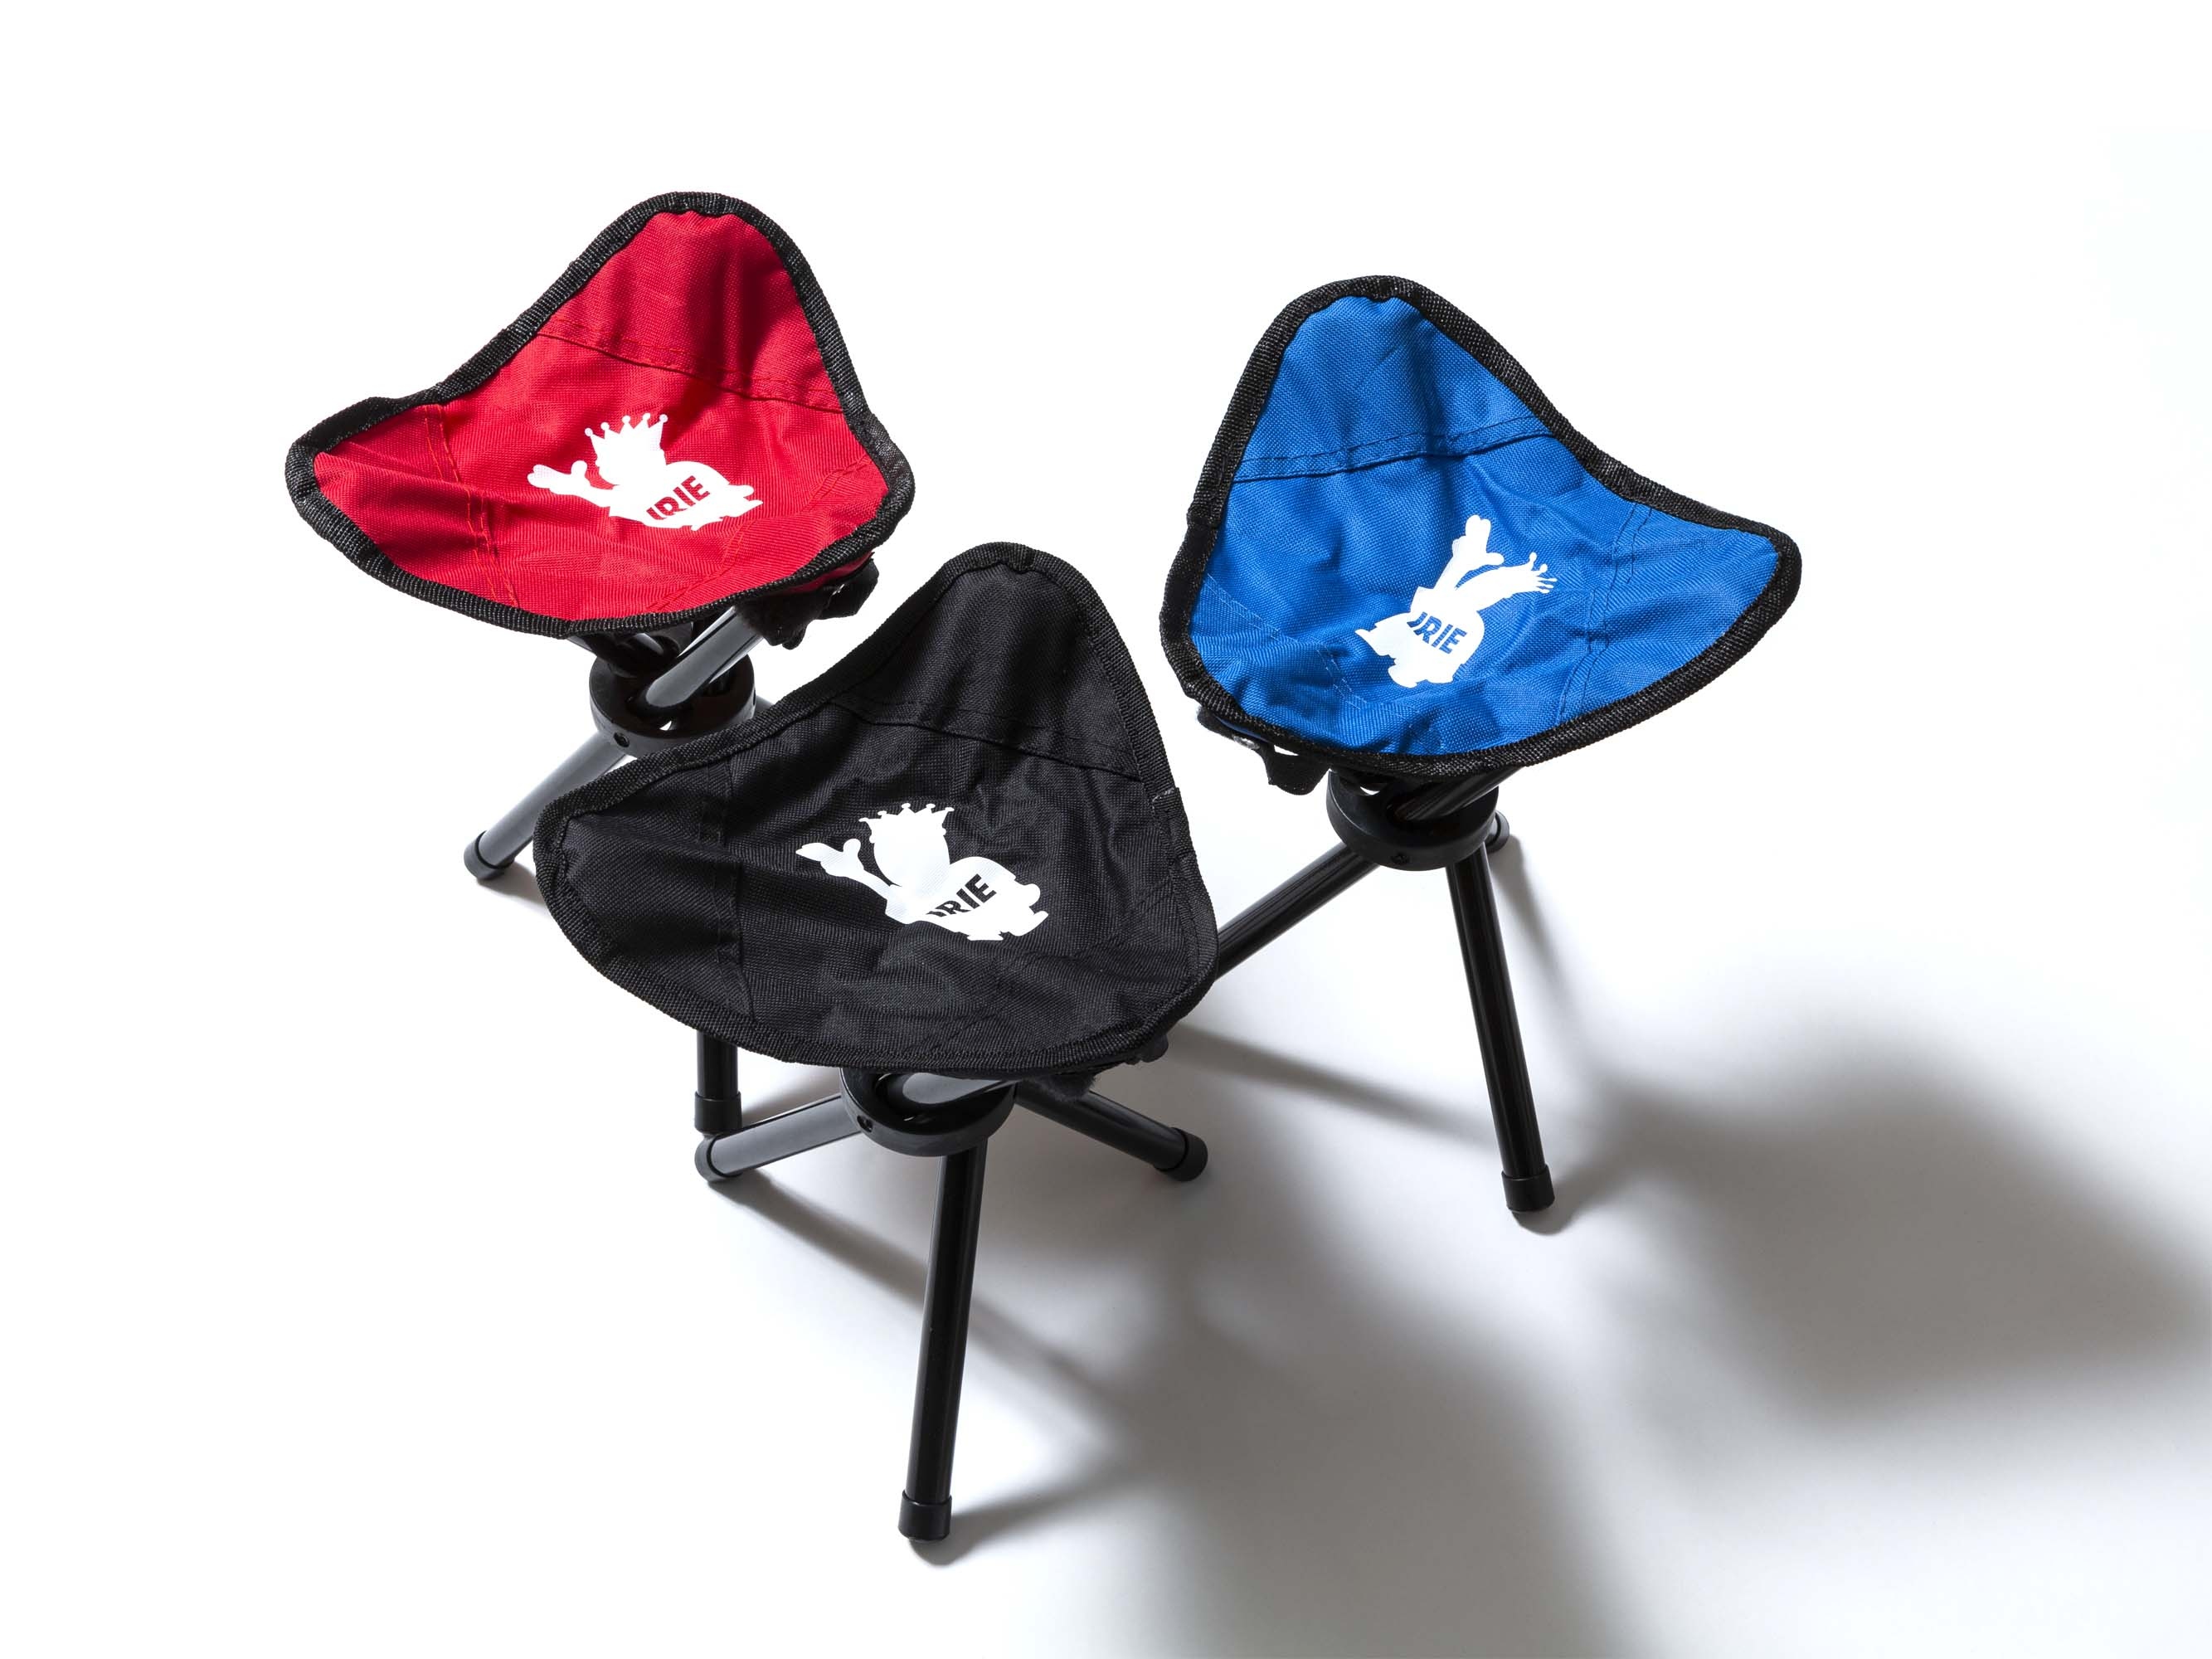 POW KING COMPACT CHAIR - IRIE by irielife